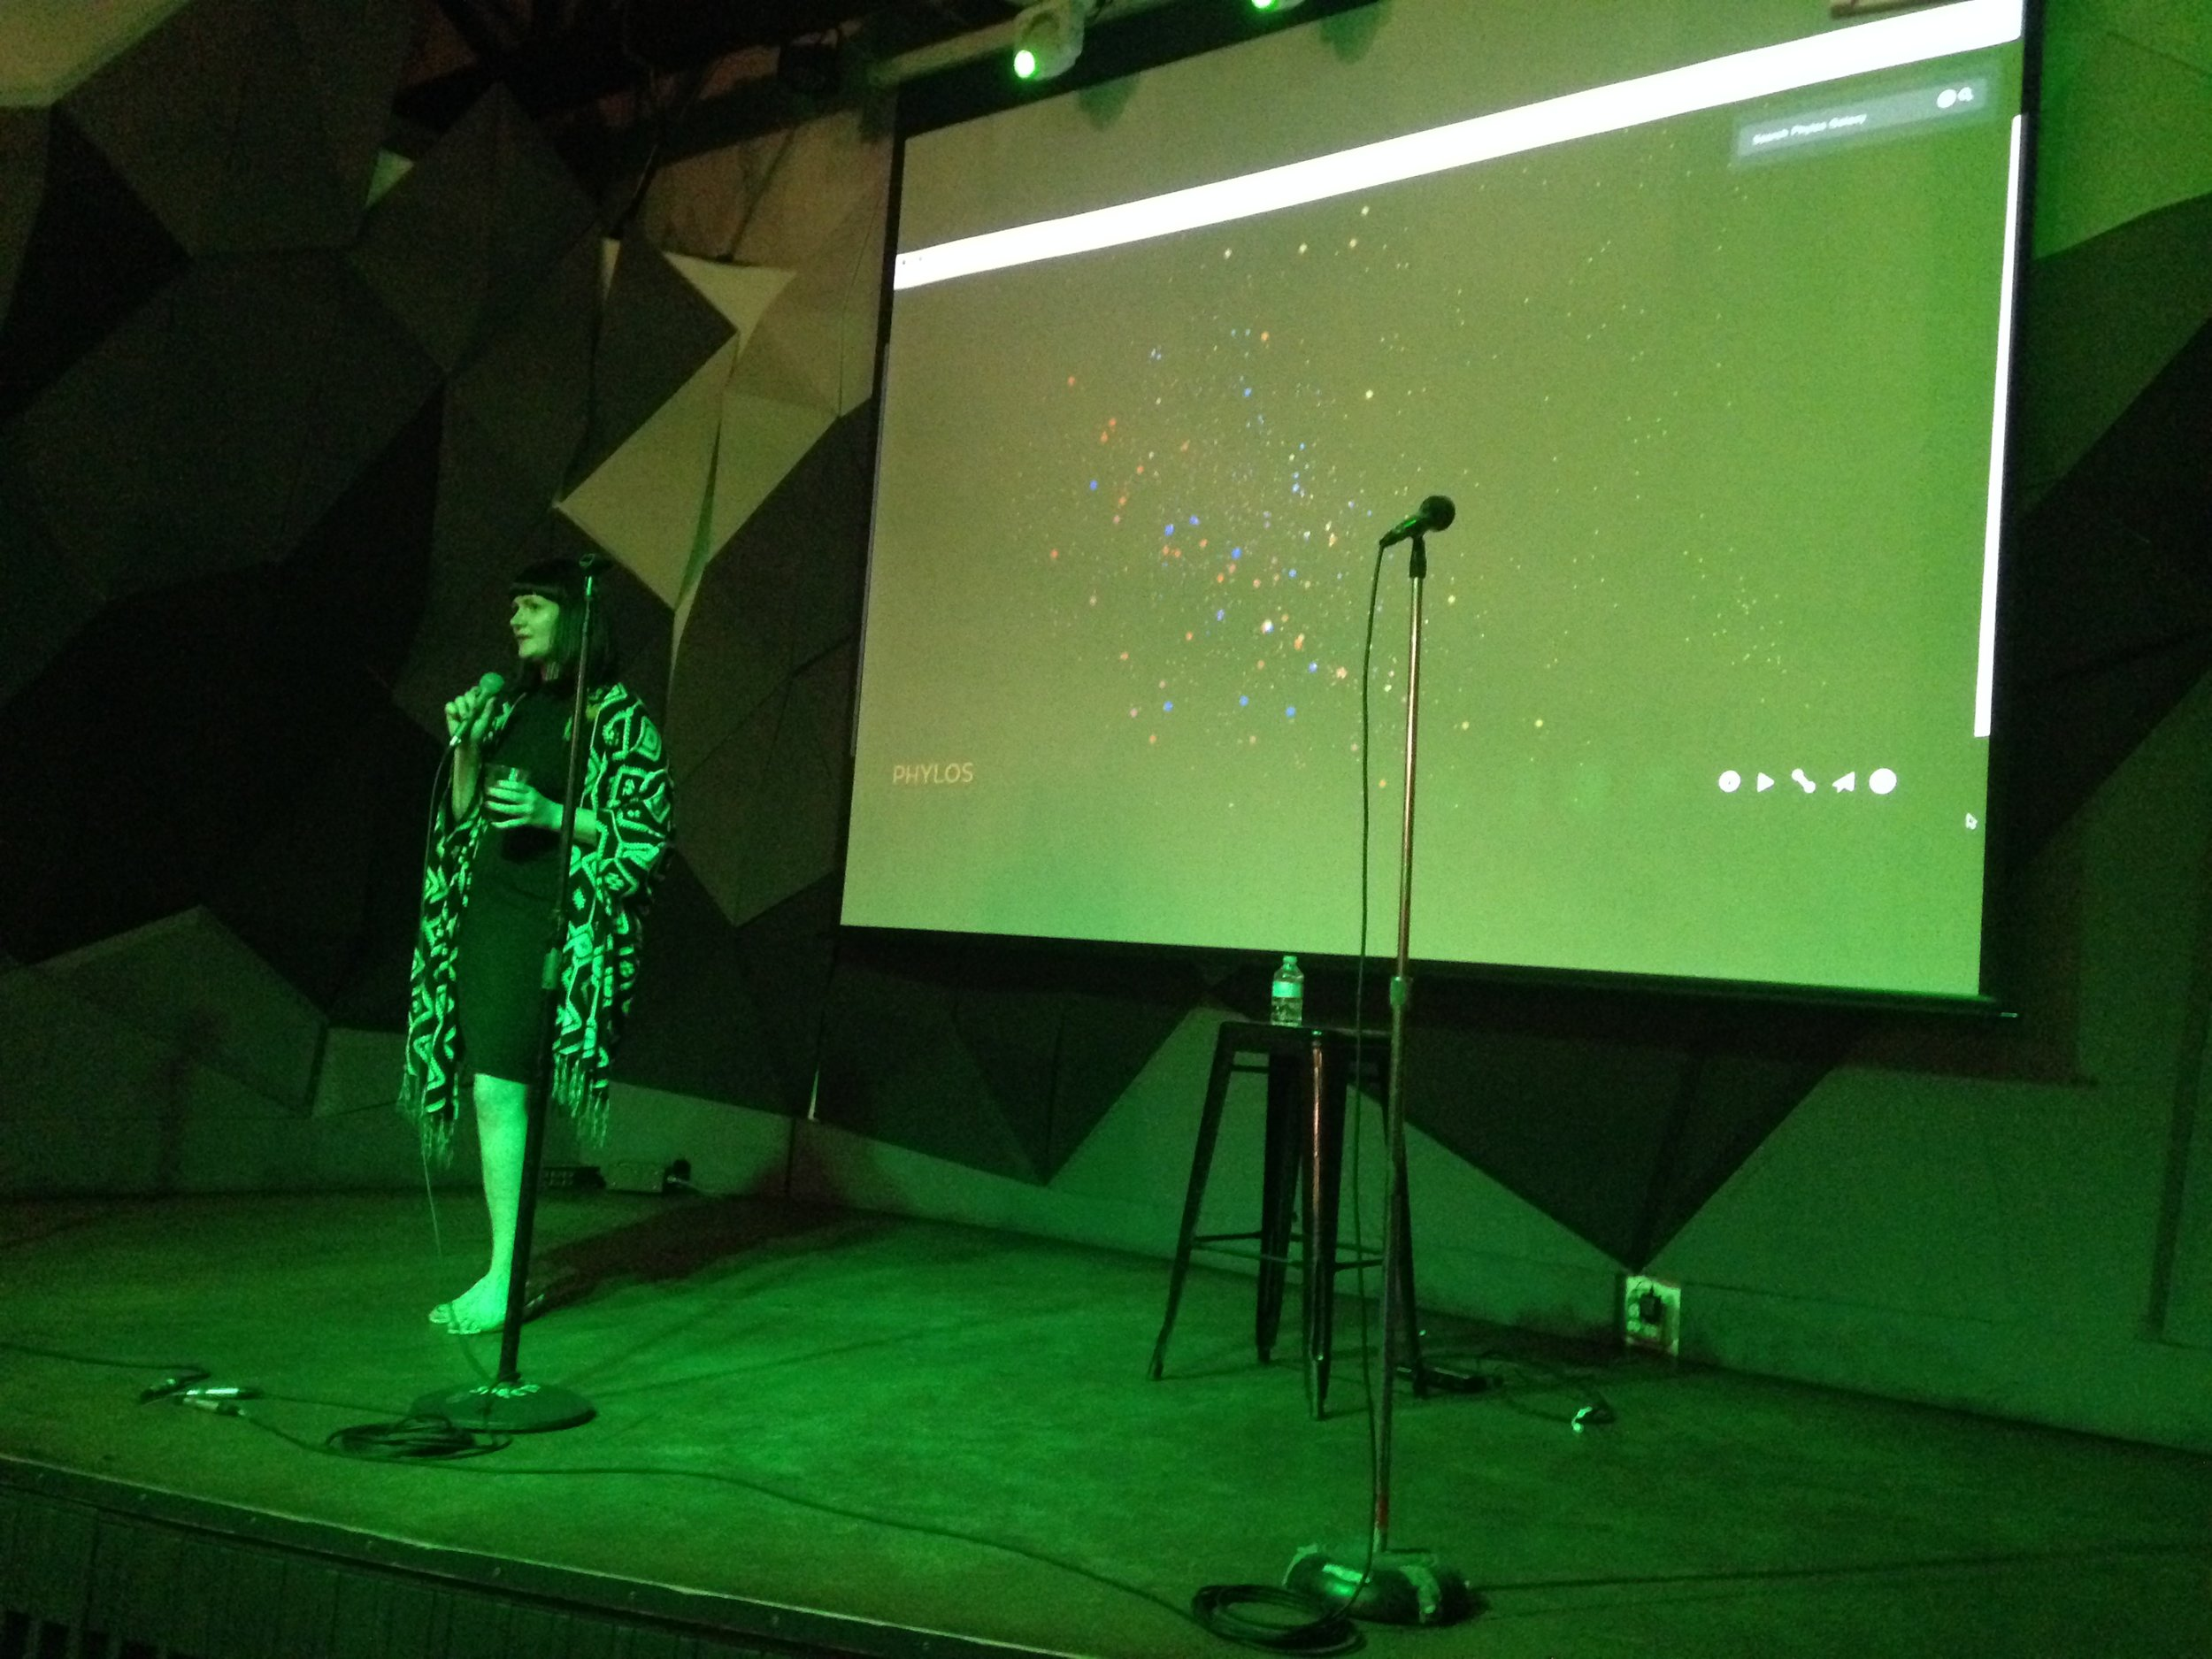 Smart and inspiring Carolyn White of  Phylos Bioscience  gave the second talk of the night all about her work and Phylos' work mapping the cannabis genome.